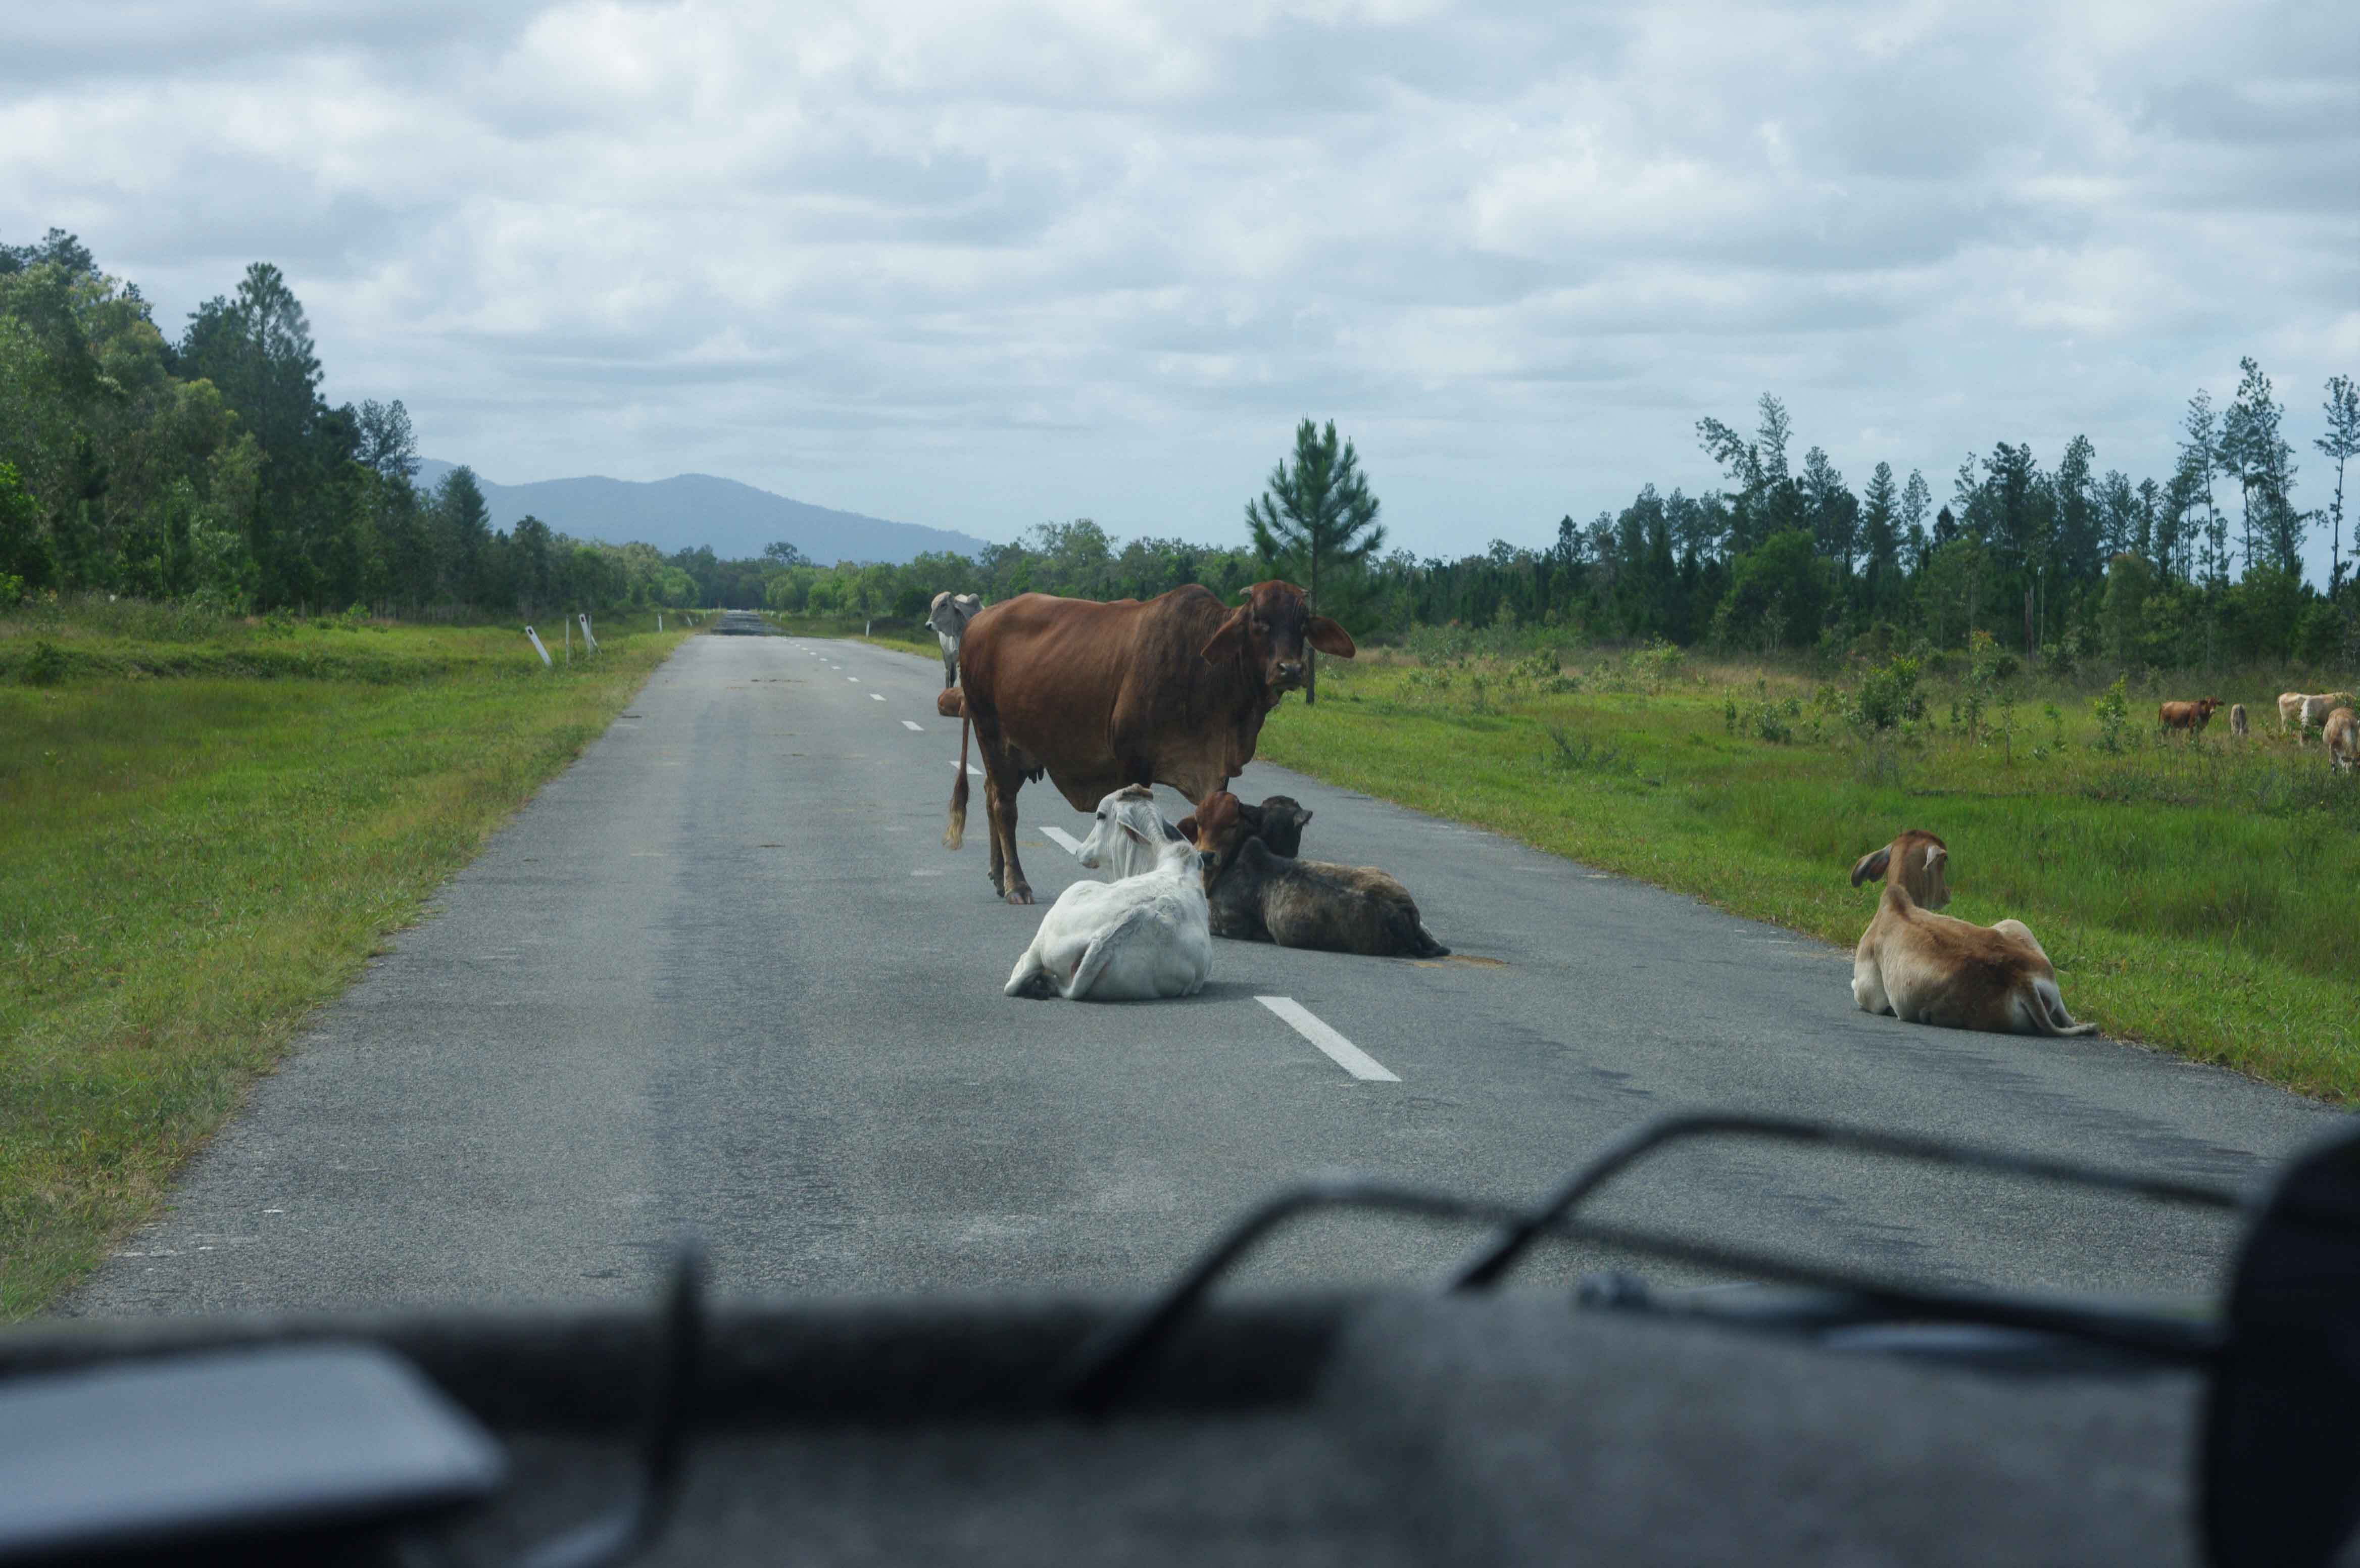 Cows and cattle on the road